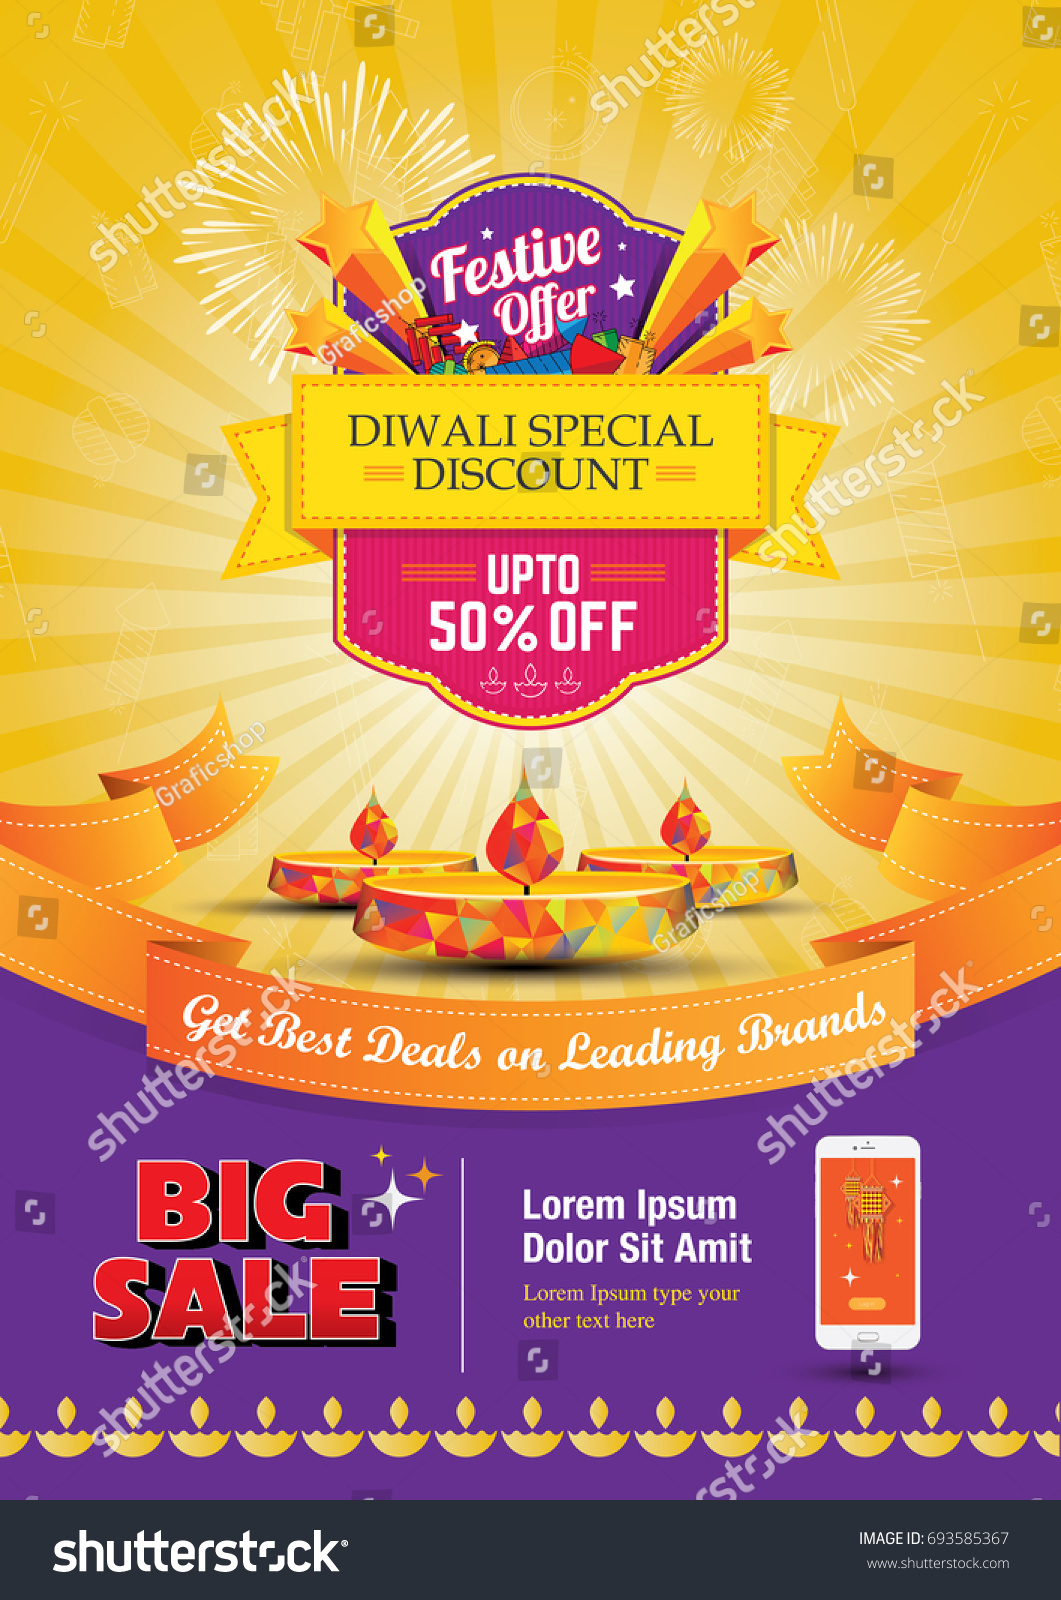 Diwali Festival Sale Poster Flyer Layout Template a4 Size  #693585367